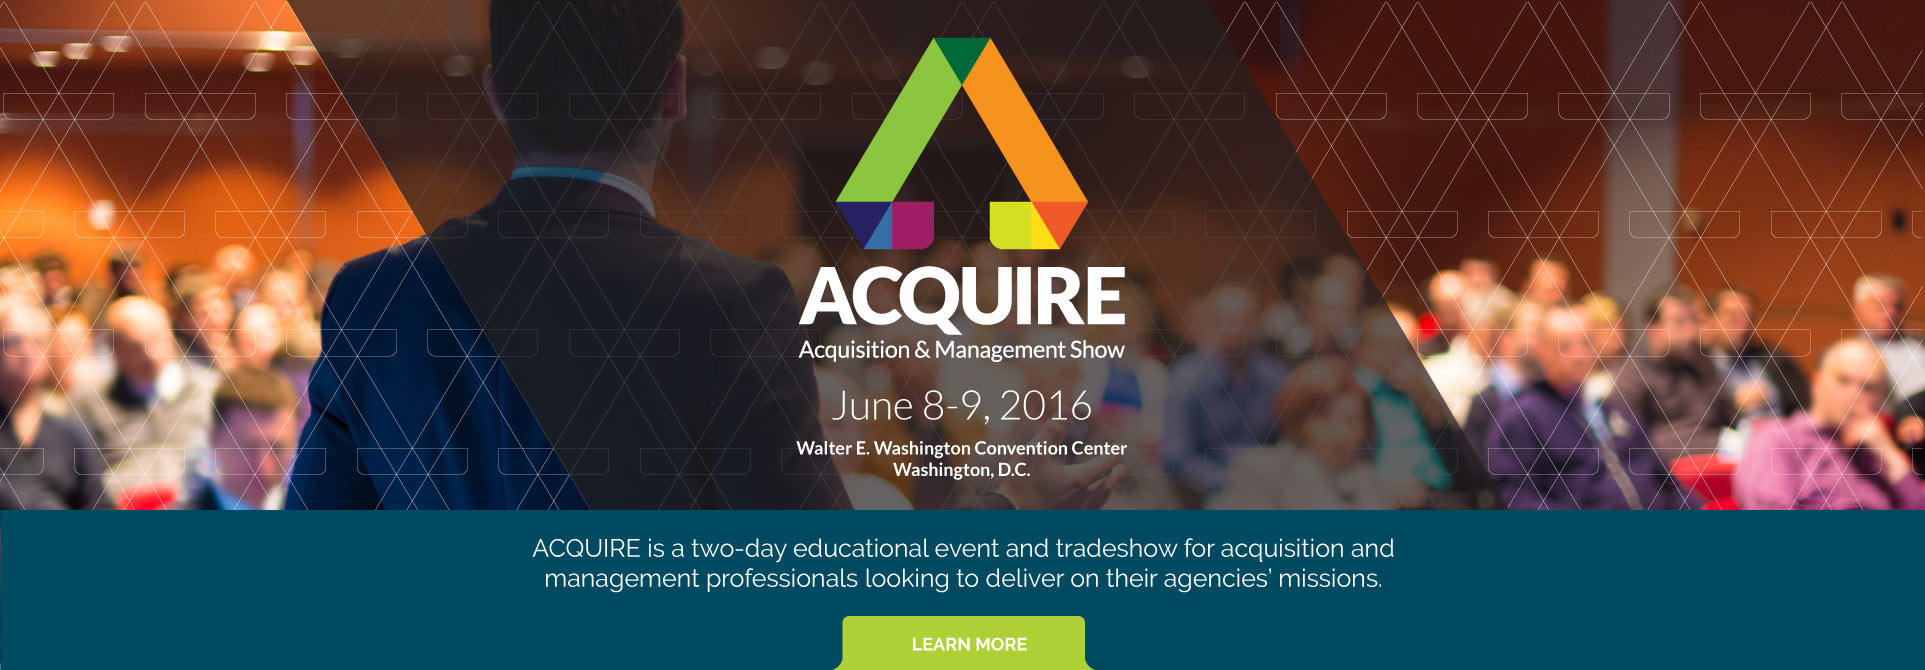 Acquire - Acquisition and Management Show